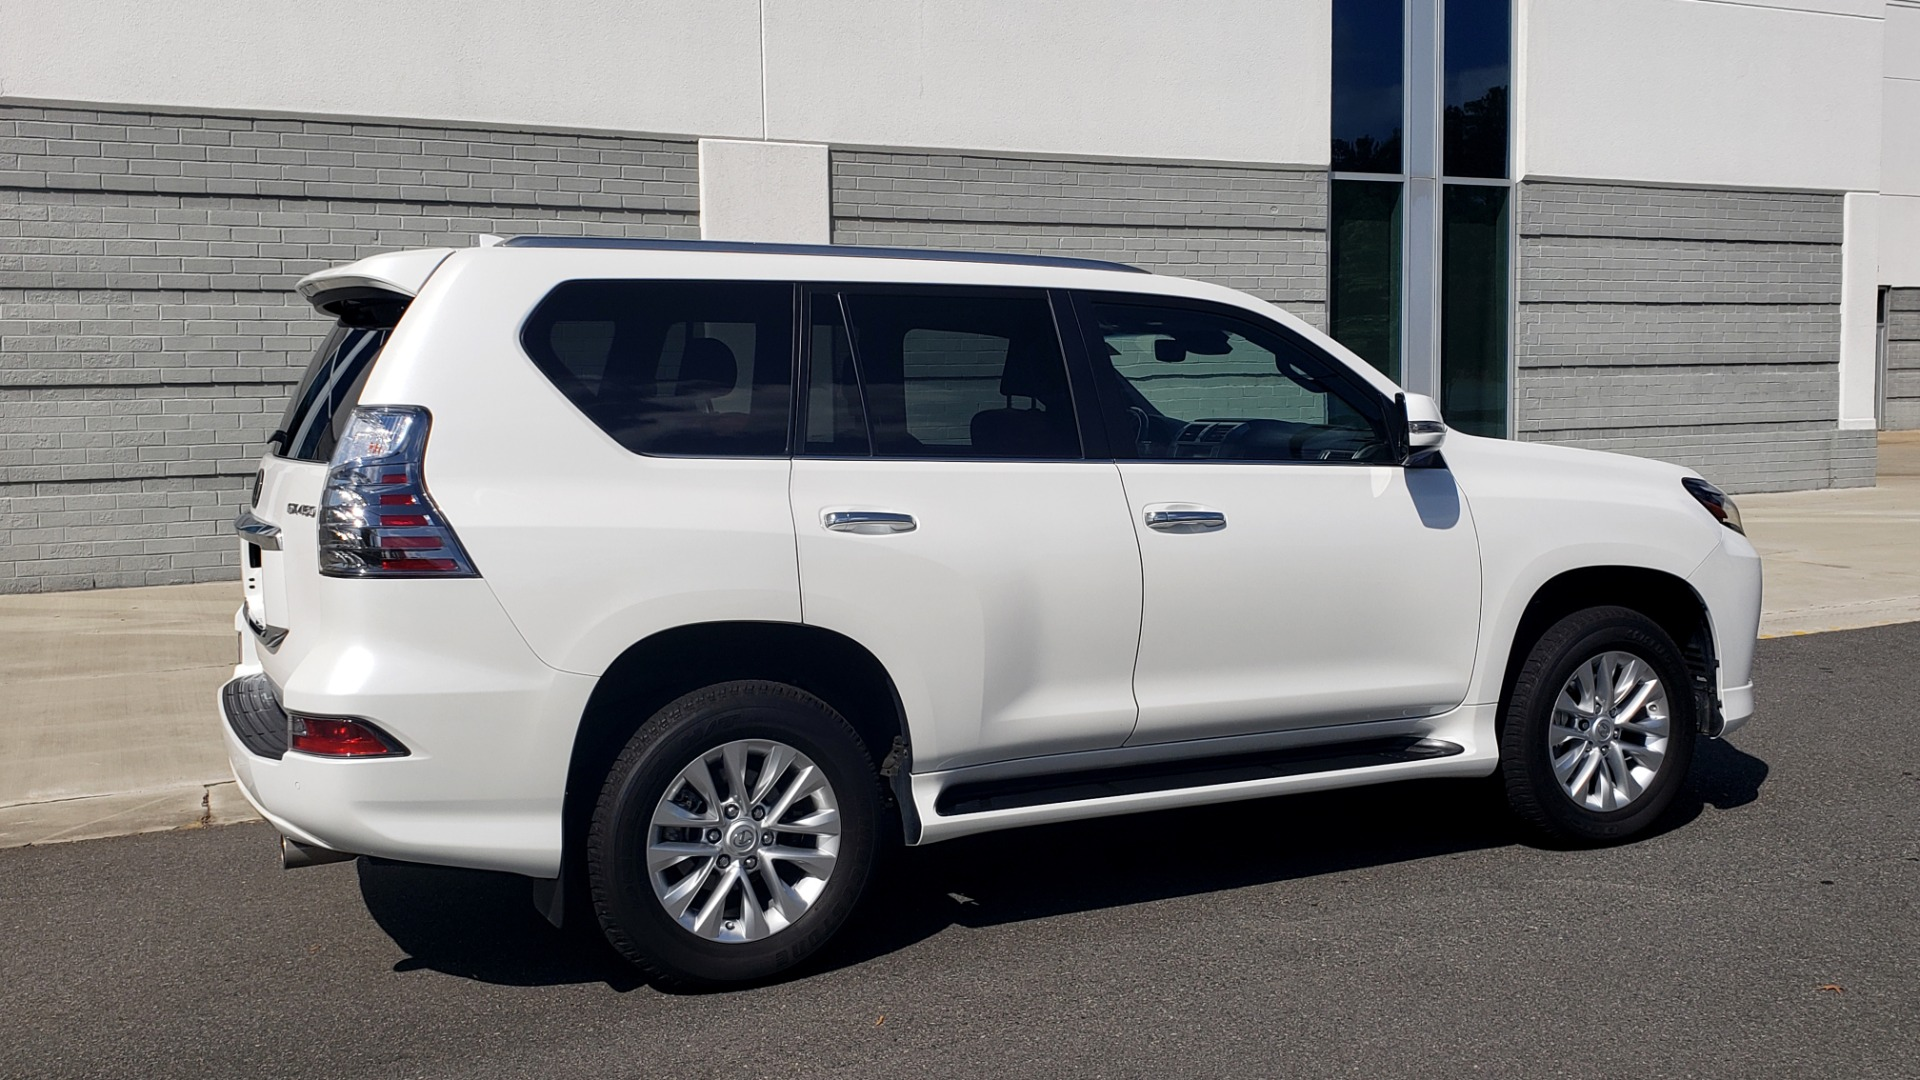 Used 2021 Lexus GX 460 PREMIUM / AWD / NAV / SUNROOF / 3-ROW / REARVIEW for sale Sold at Formula Imports in Charlotte NC 28227 8